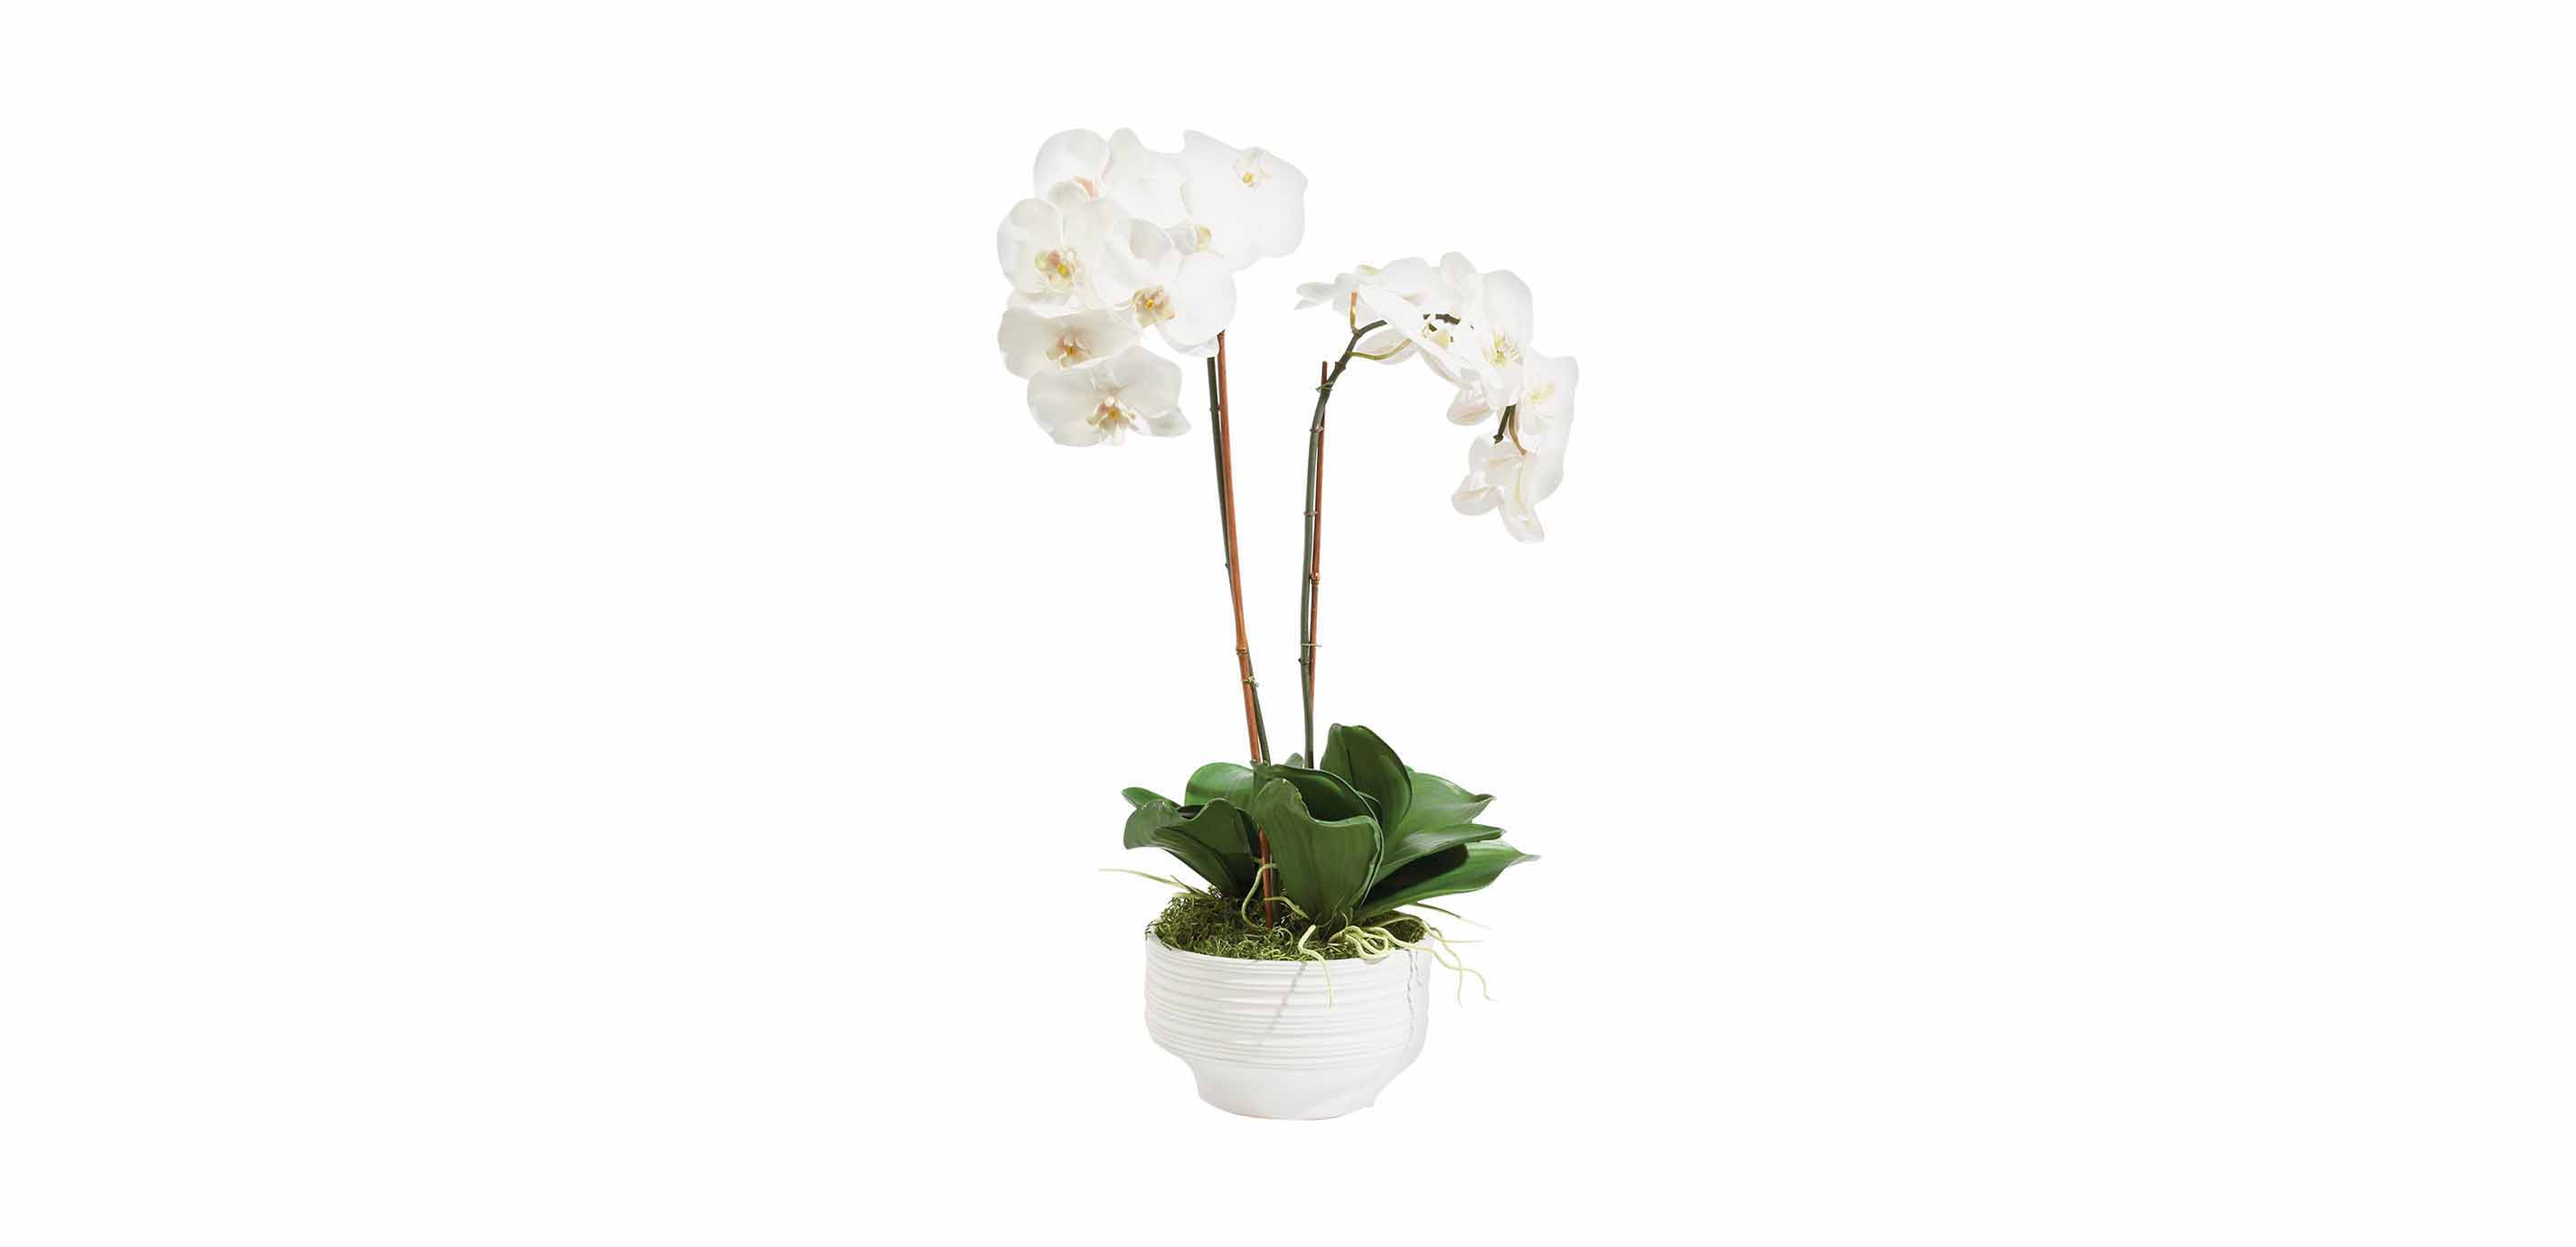 Orchid Pots Ceramic White White Orchid in Ceramic Pot